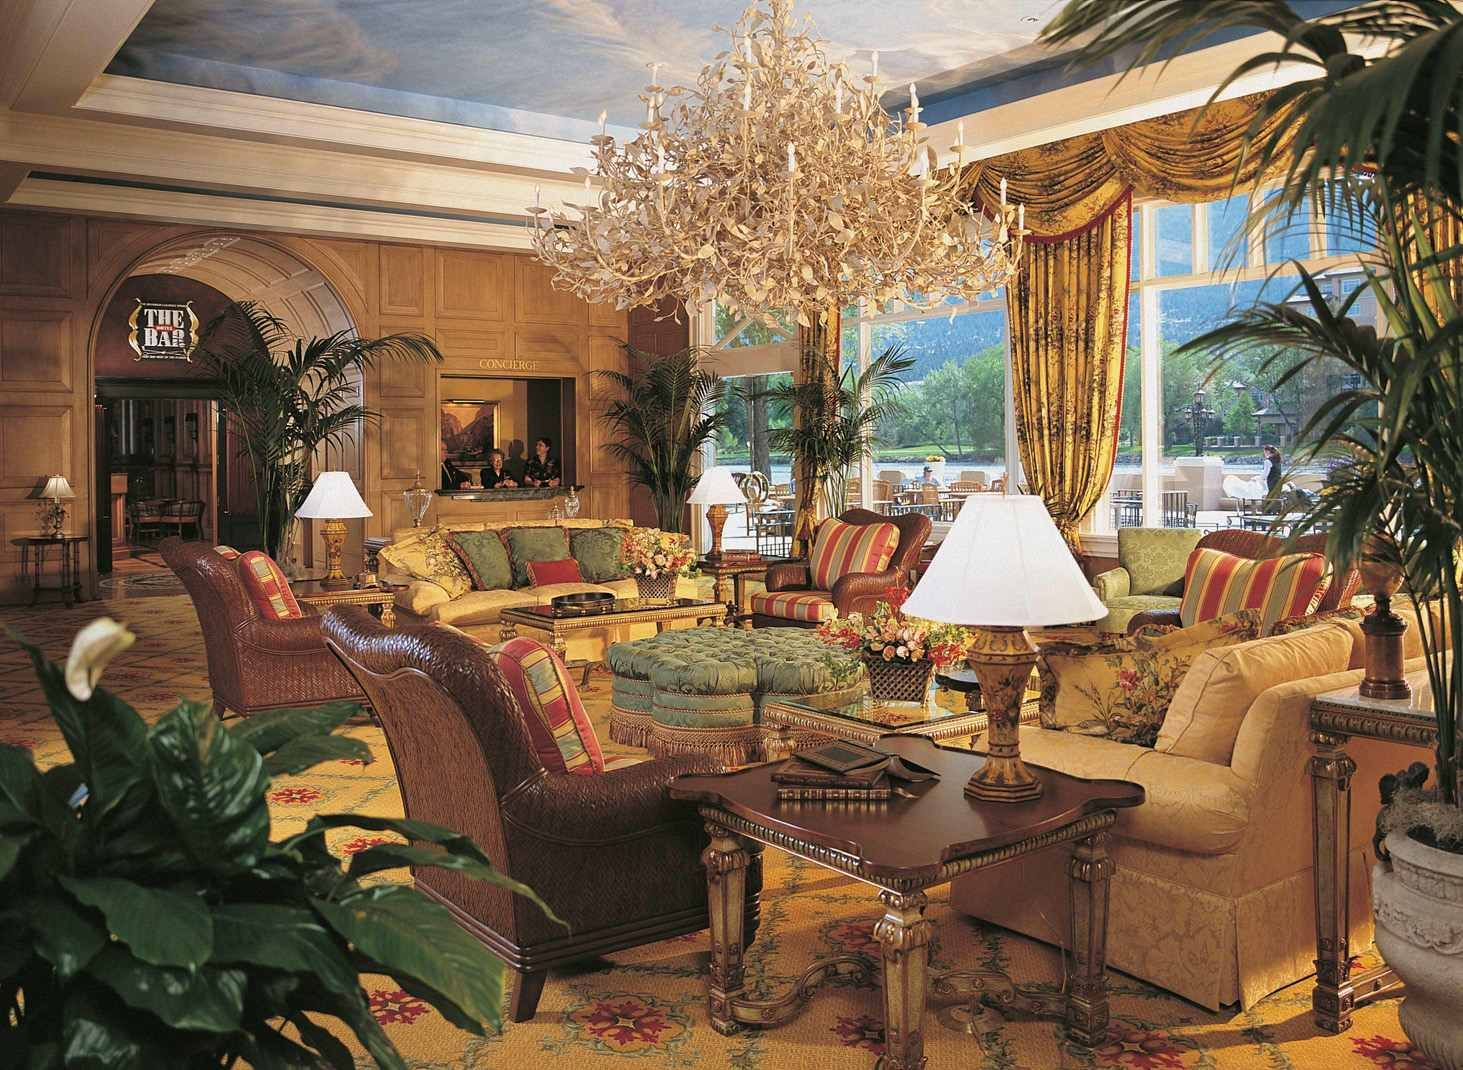 Mezzanine Lobby Broadmoor Hotel Colorado Springs Co My